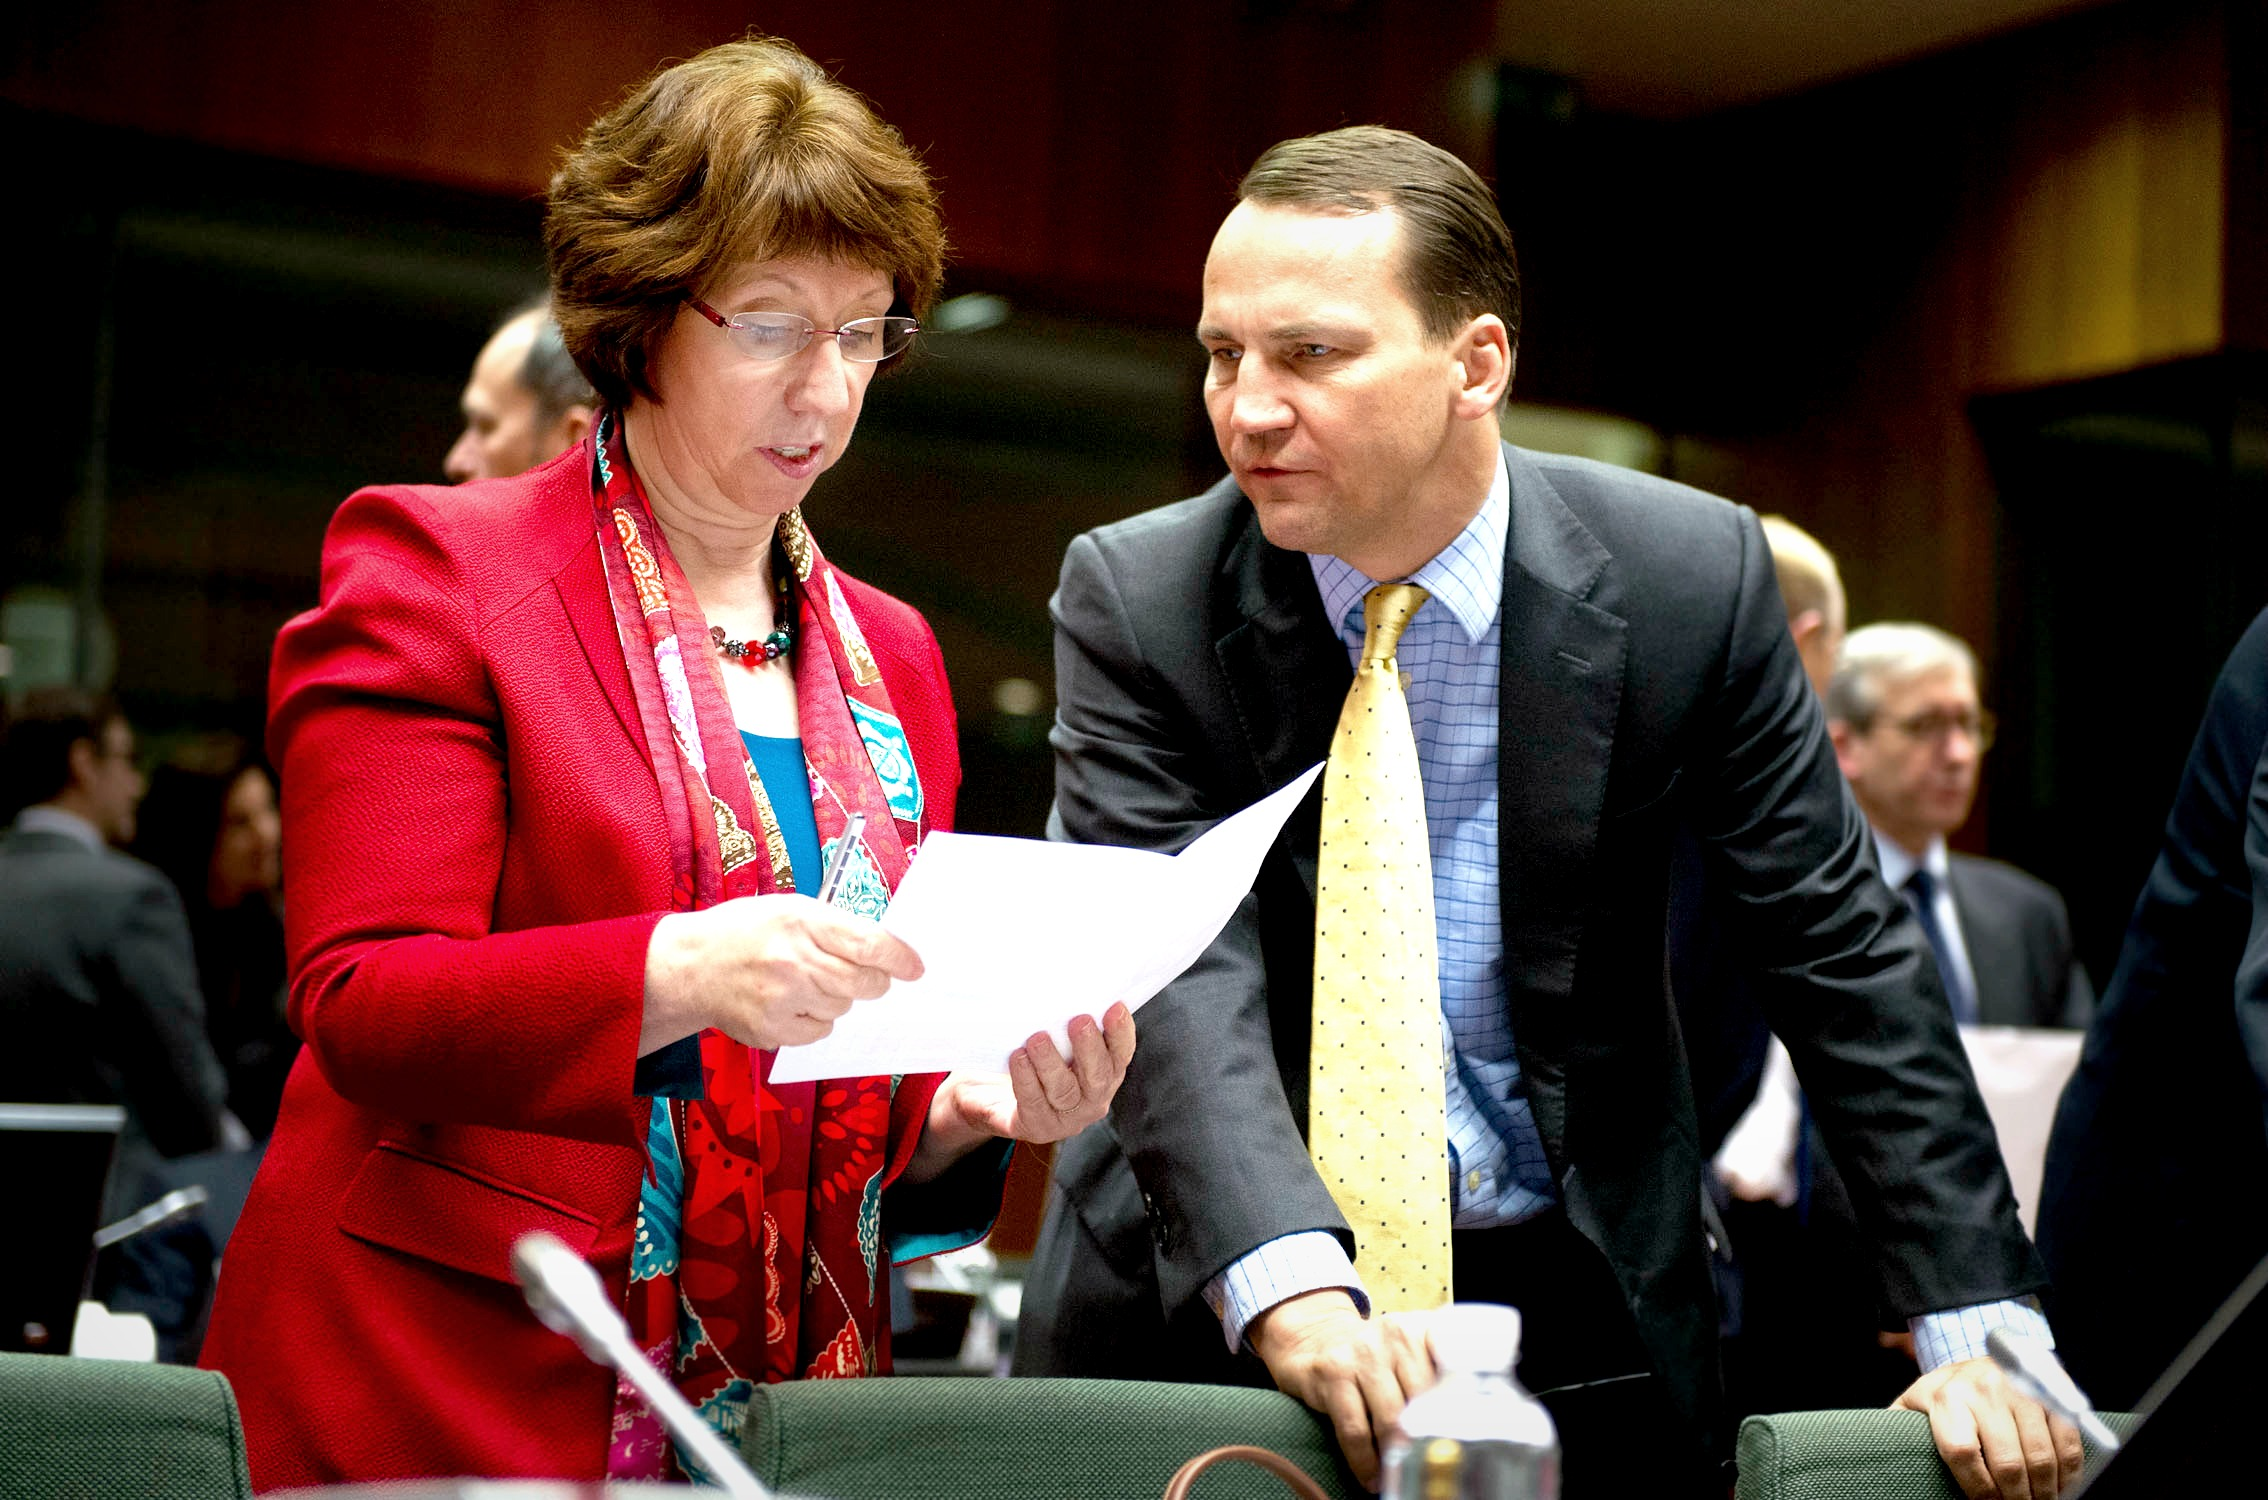 Catherine Ashton with Radoslaw Sikorski [European External Action Service/Flickr]